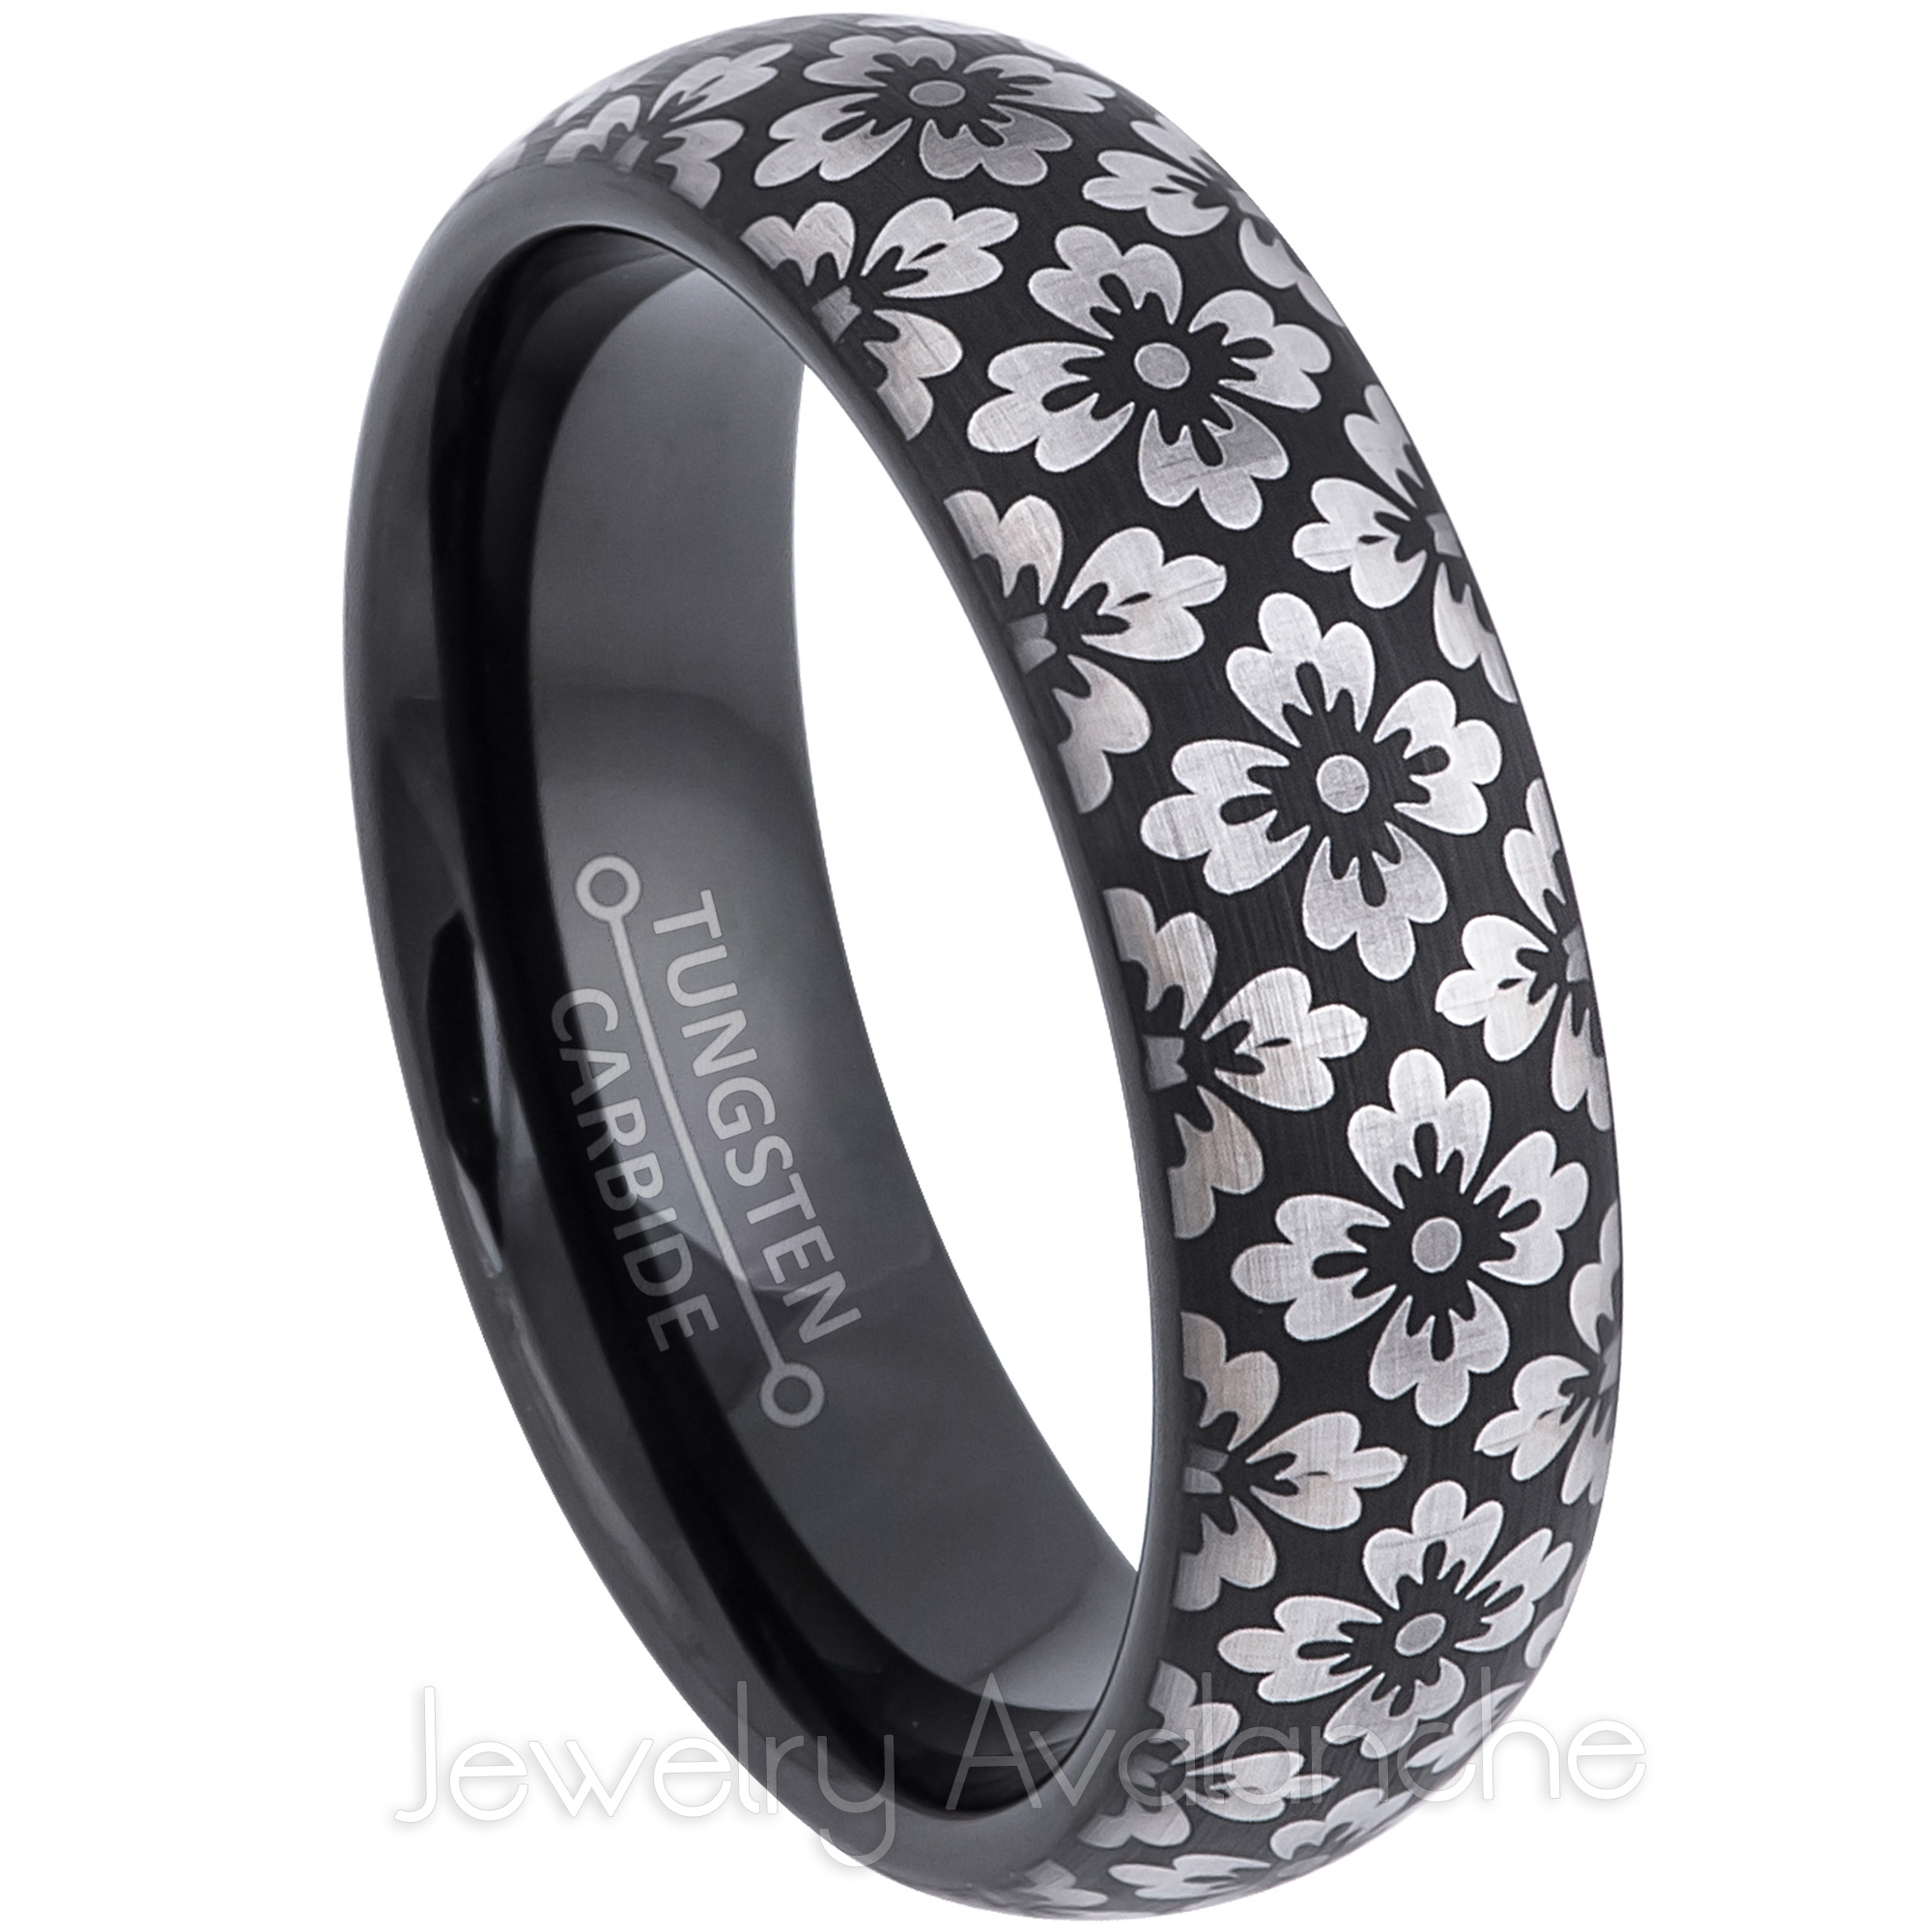 Tungsten Jeweler Free Engraving 6mm White Titanium Classic Domed Brushed Finish Wedding Band Ring for Him or Her